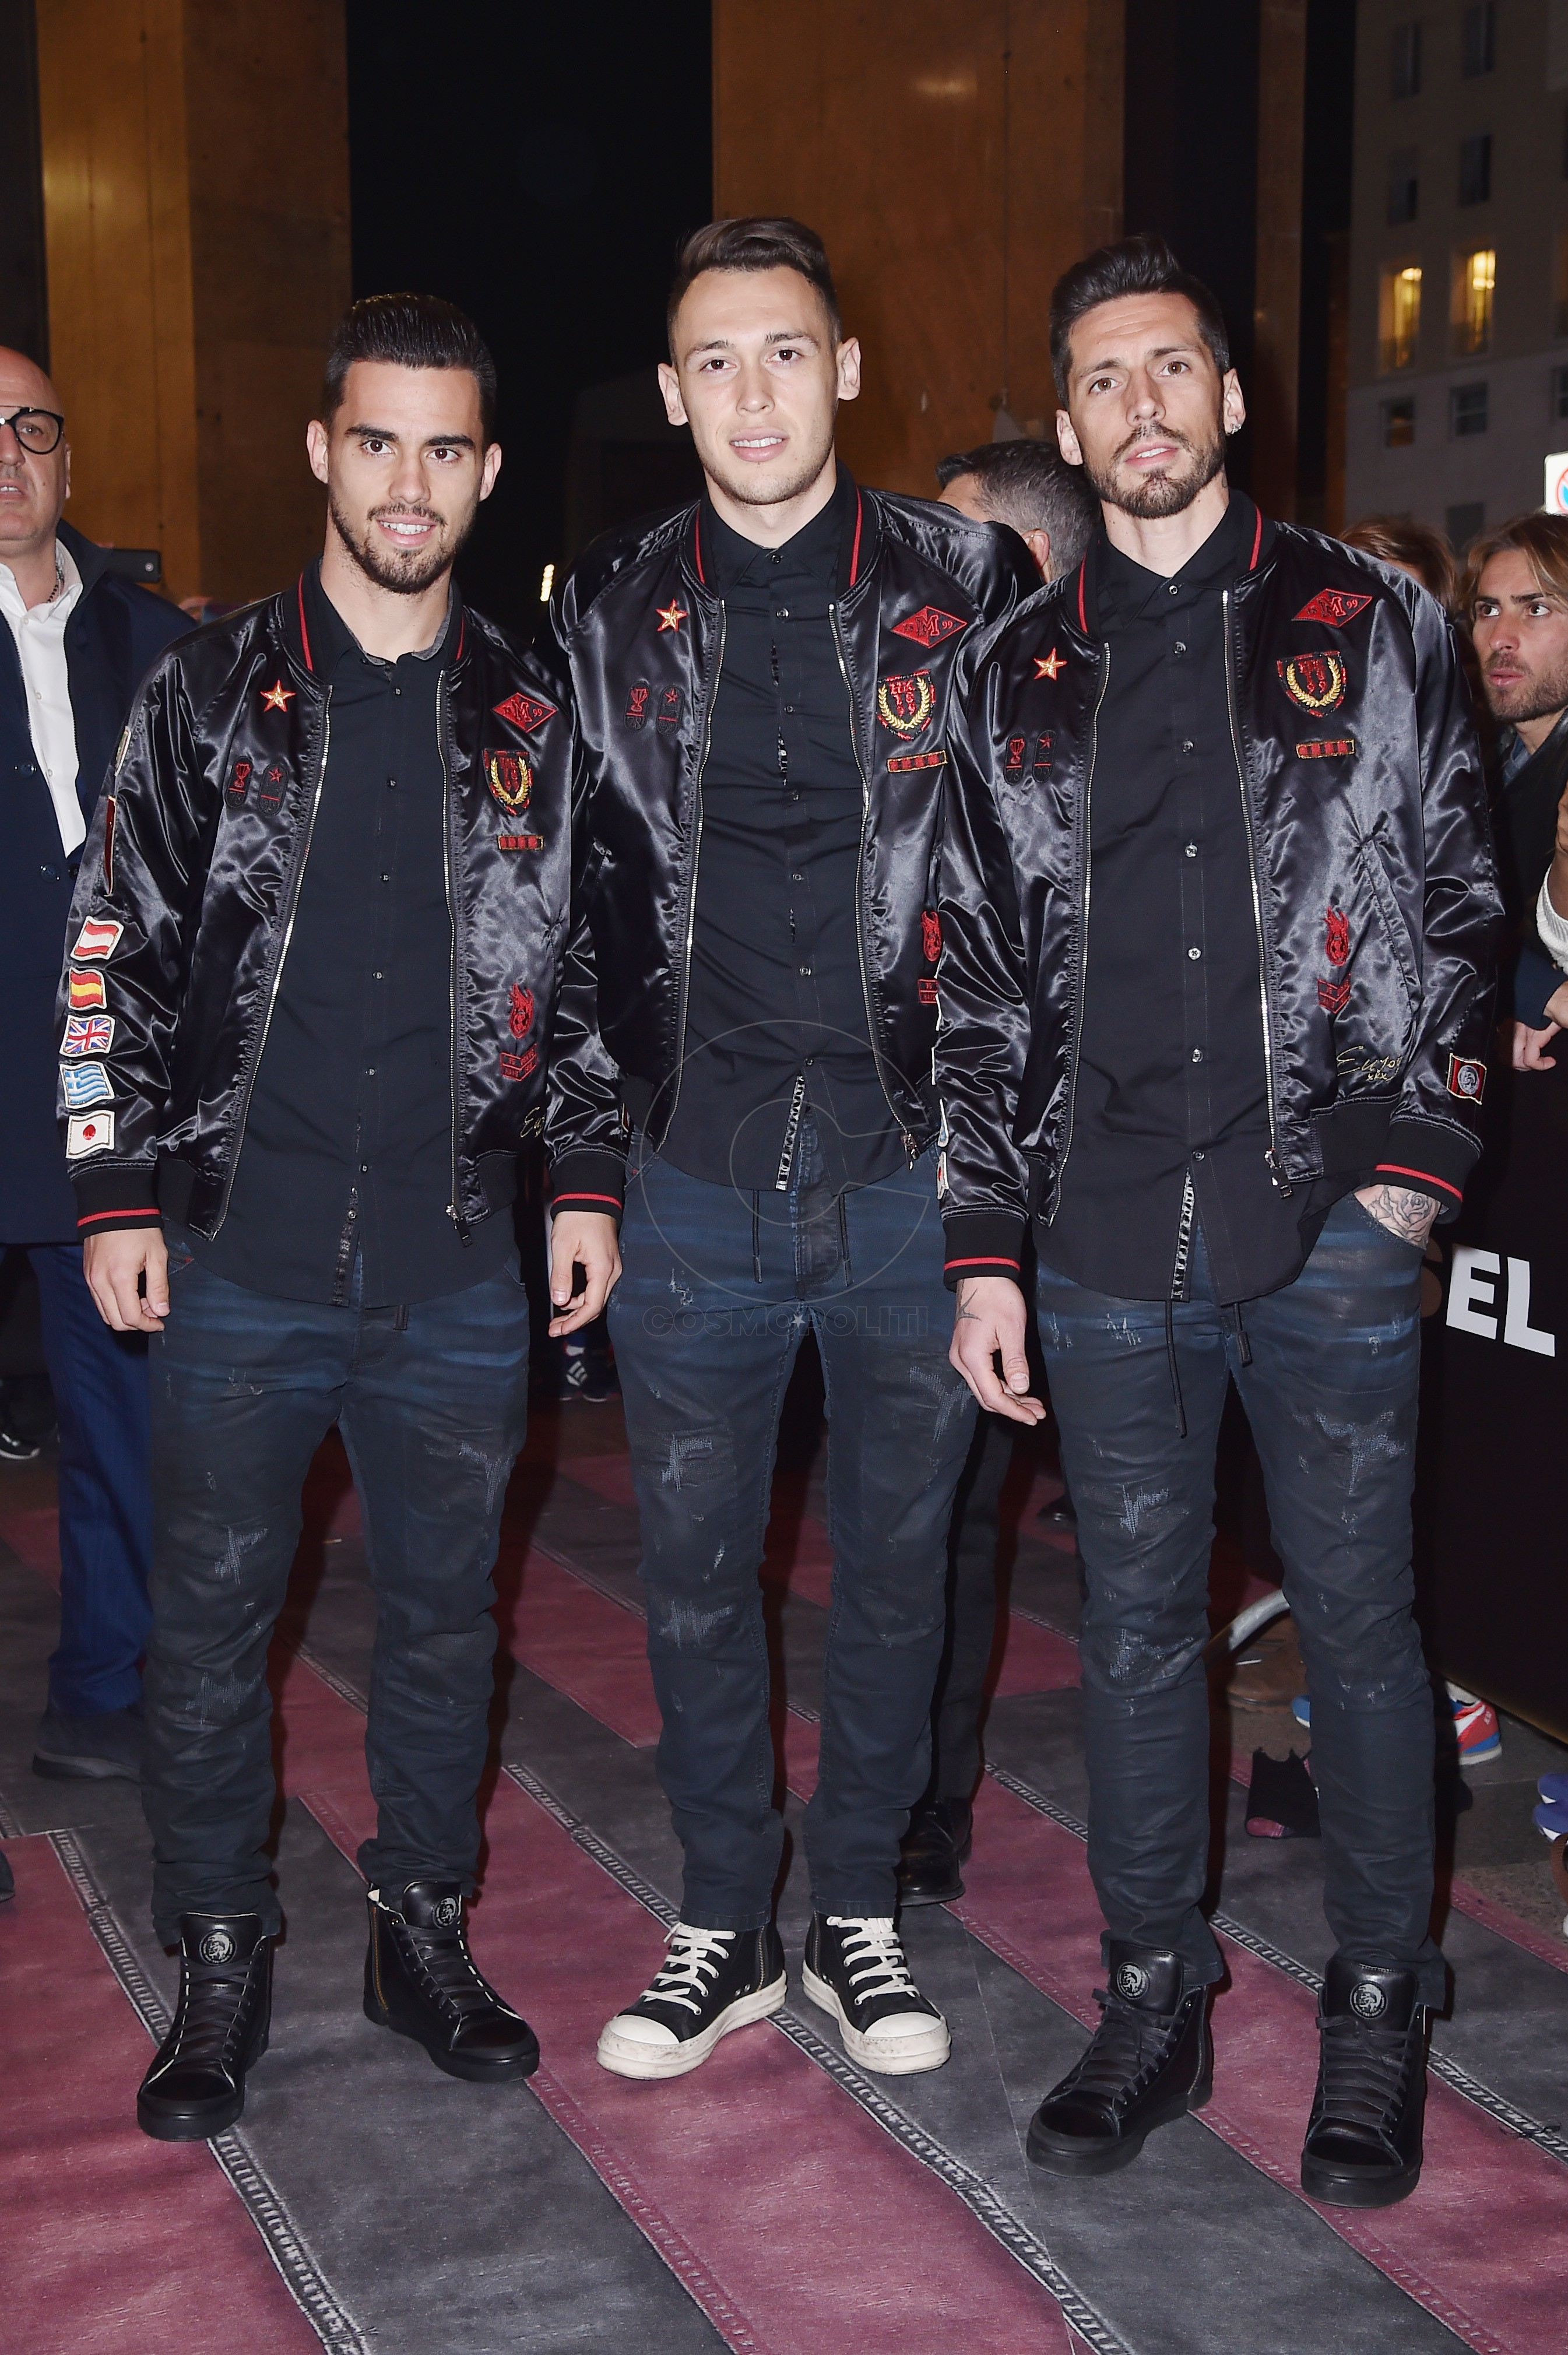 MILAN, ITALY - MARCH 14: (L-R) Jesus Joaquin Fernandez Saez de la Torre (also know as Suso), Lucas Ocampos and Jose Ernesto Sosa attend The New Bomber Presentation at the Diesel Store on March 14, 2017 in Milan, Italy. (Photo by Jacopo Raule/Getty Images for Diesel)